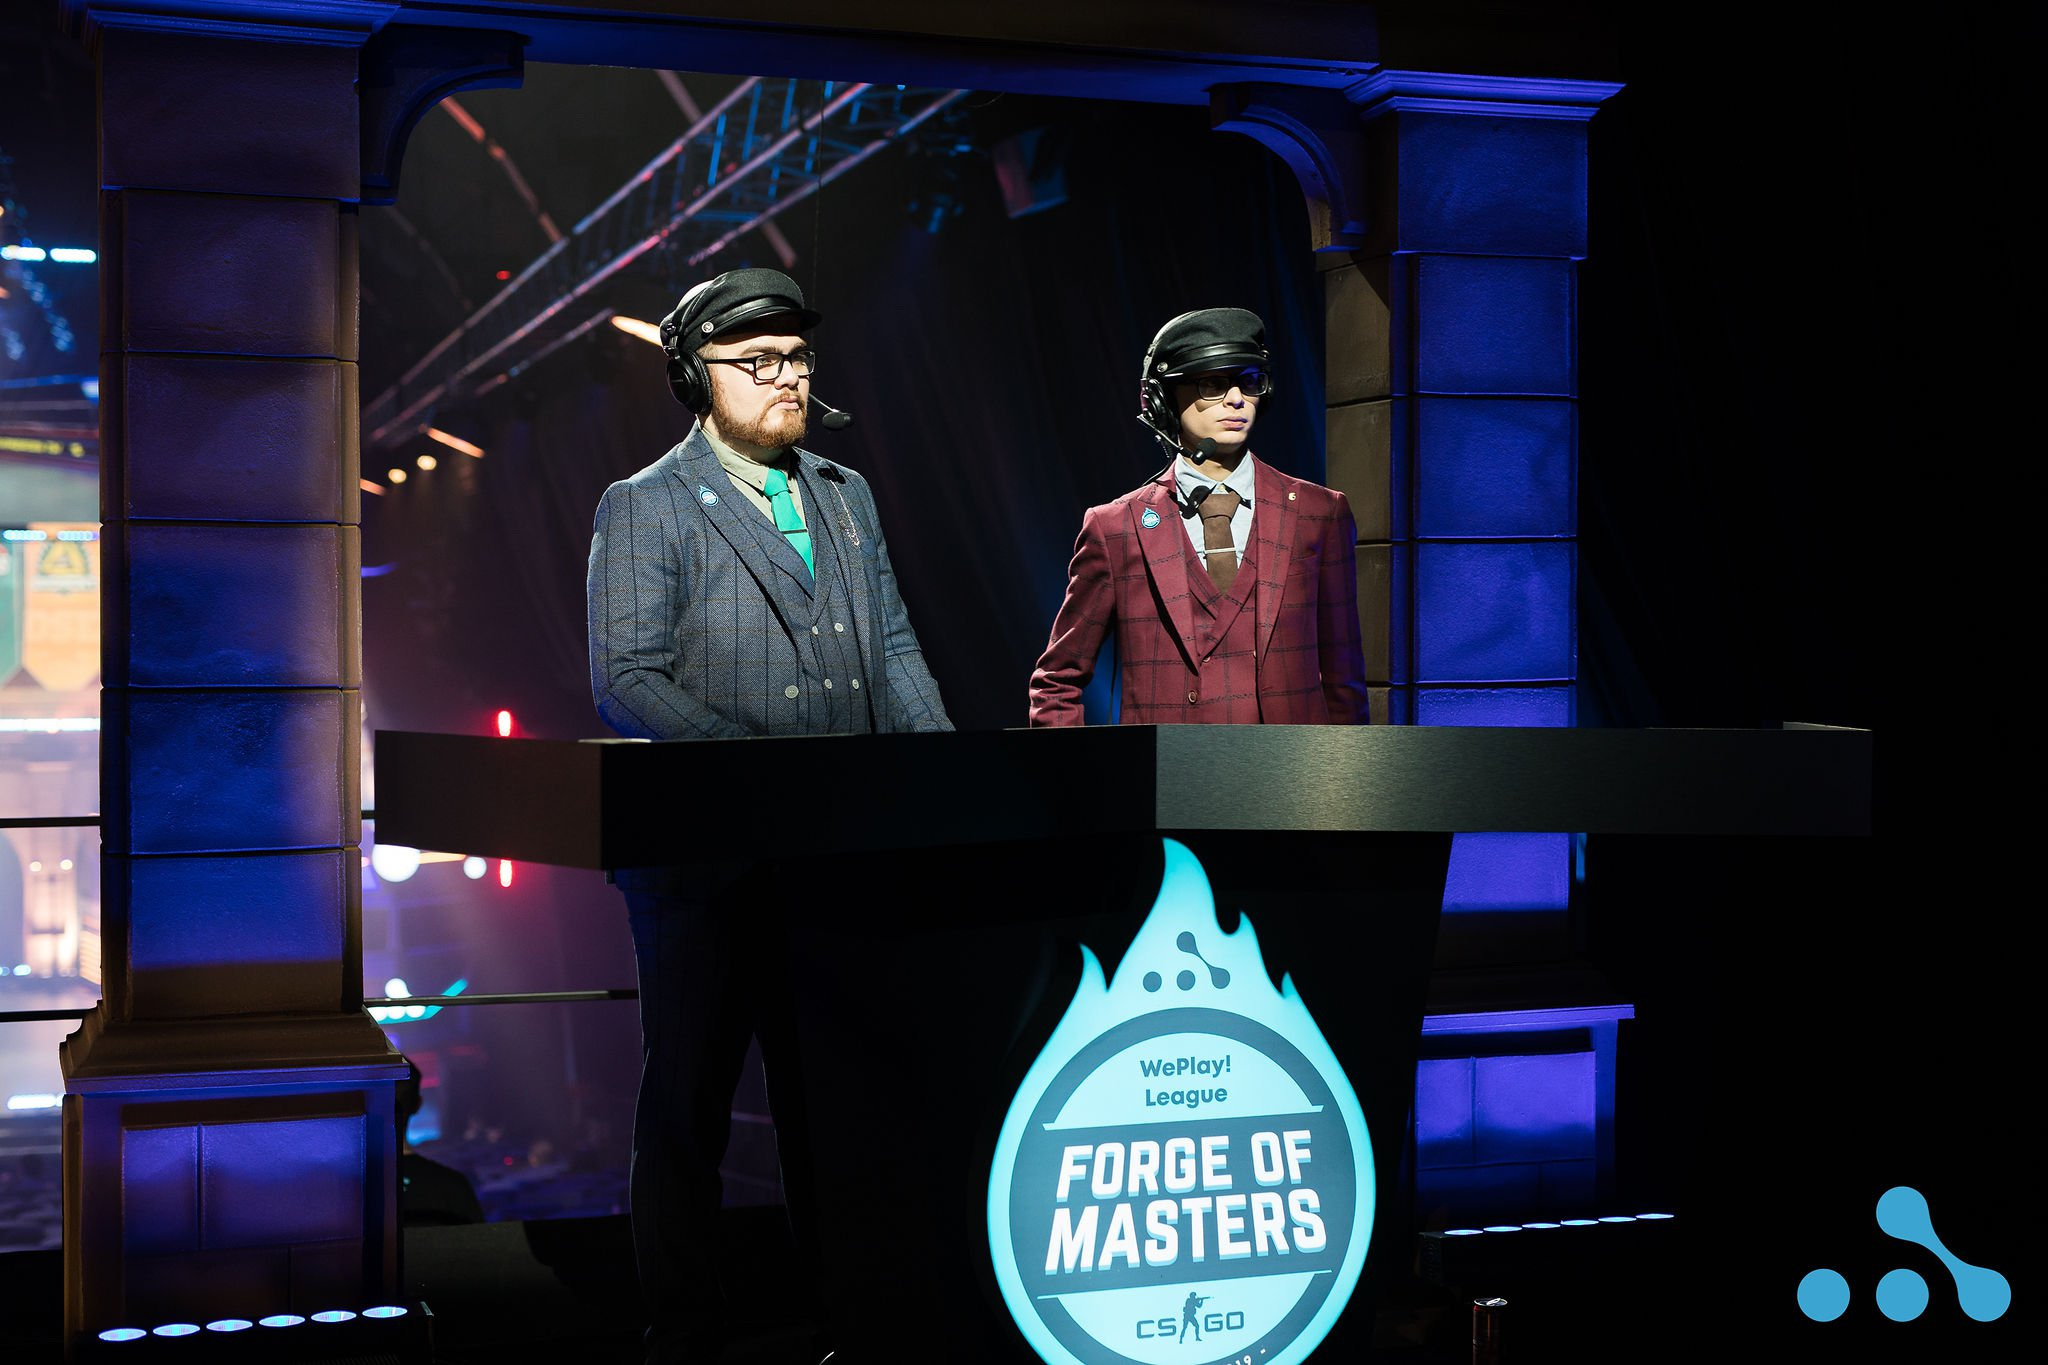 Forge of Masters. WePlay! League Season 2